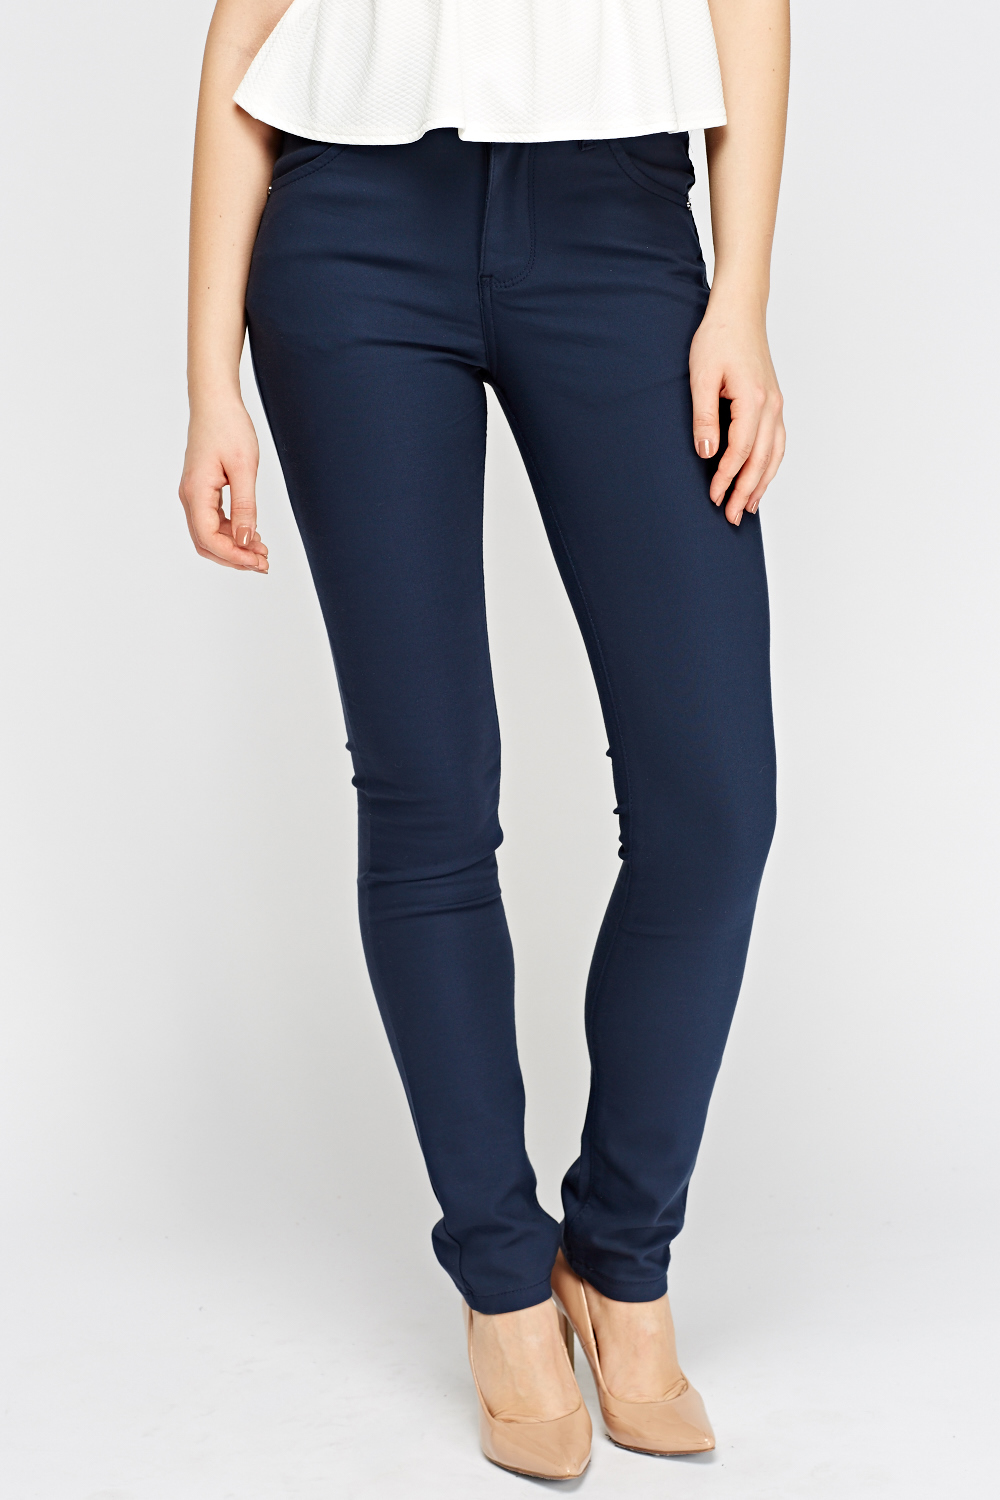 But that's not all. Wearing tight pants is associated with a host of negative consequences for both men and women. For starters, the same reason tight pants causes infertility problems in men (overheating of the crotch area) can cause yeast infections and urinary tract infections in women.